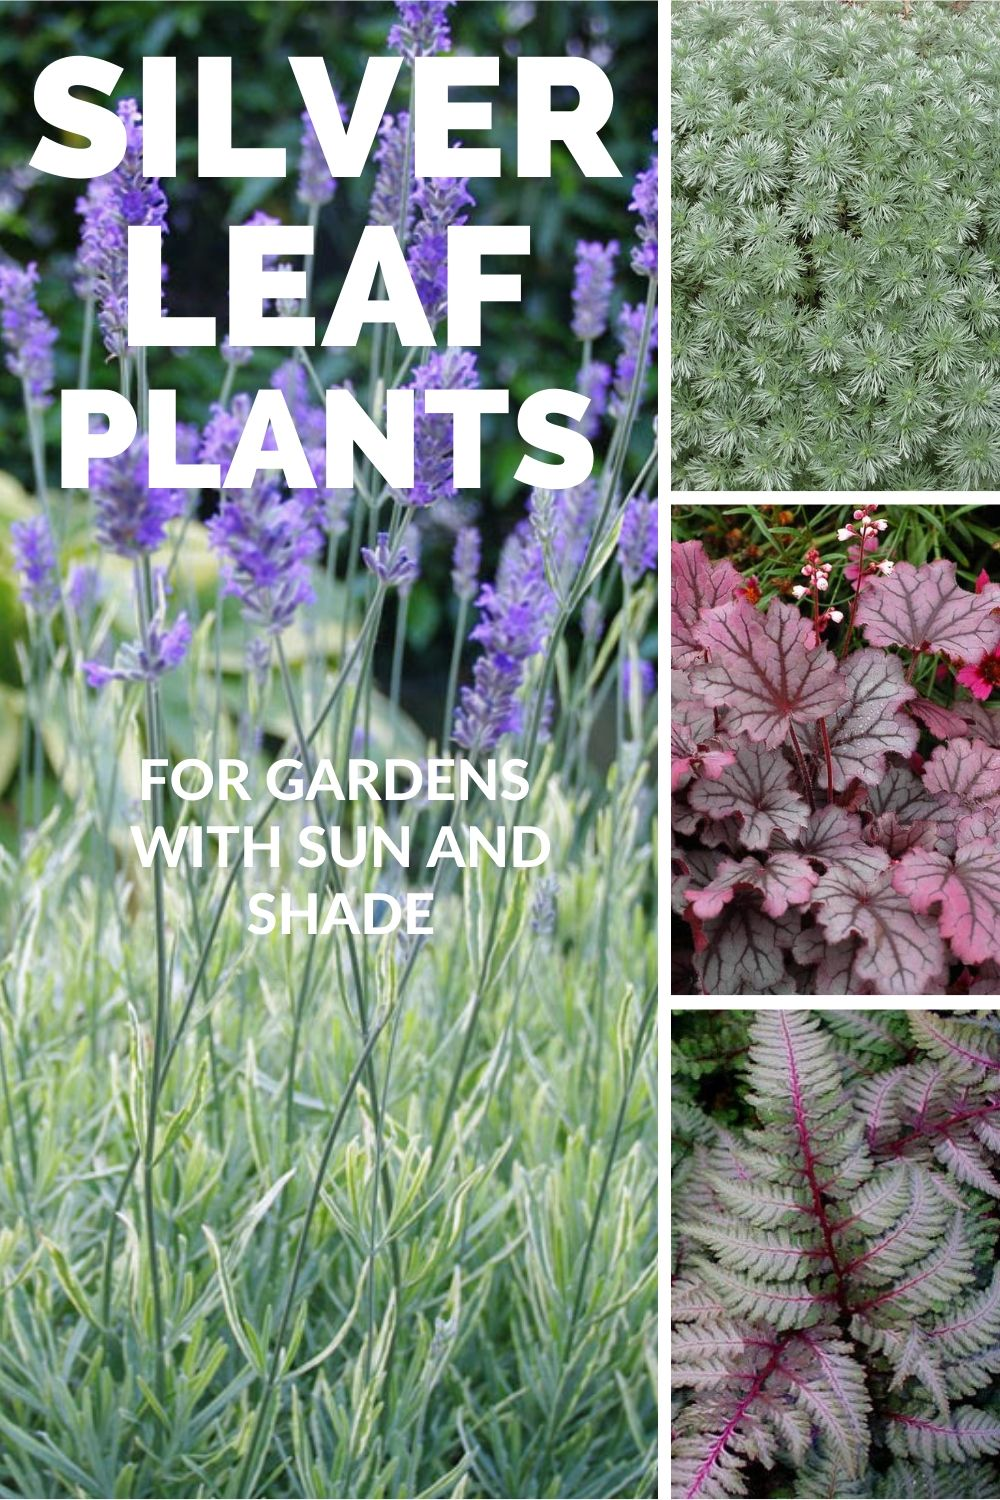 SILVER LEAF PLANTS for gardens with Sun and Shade #SilverFoliage #PlantswithSilverLeaves #DramaticFoliagePlants #Gardening #Landscapes #SilverLeafPlants